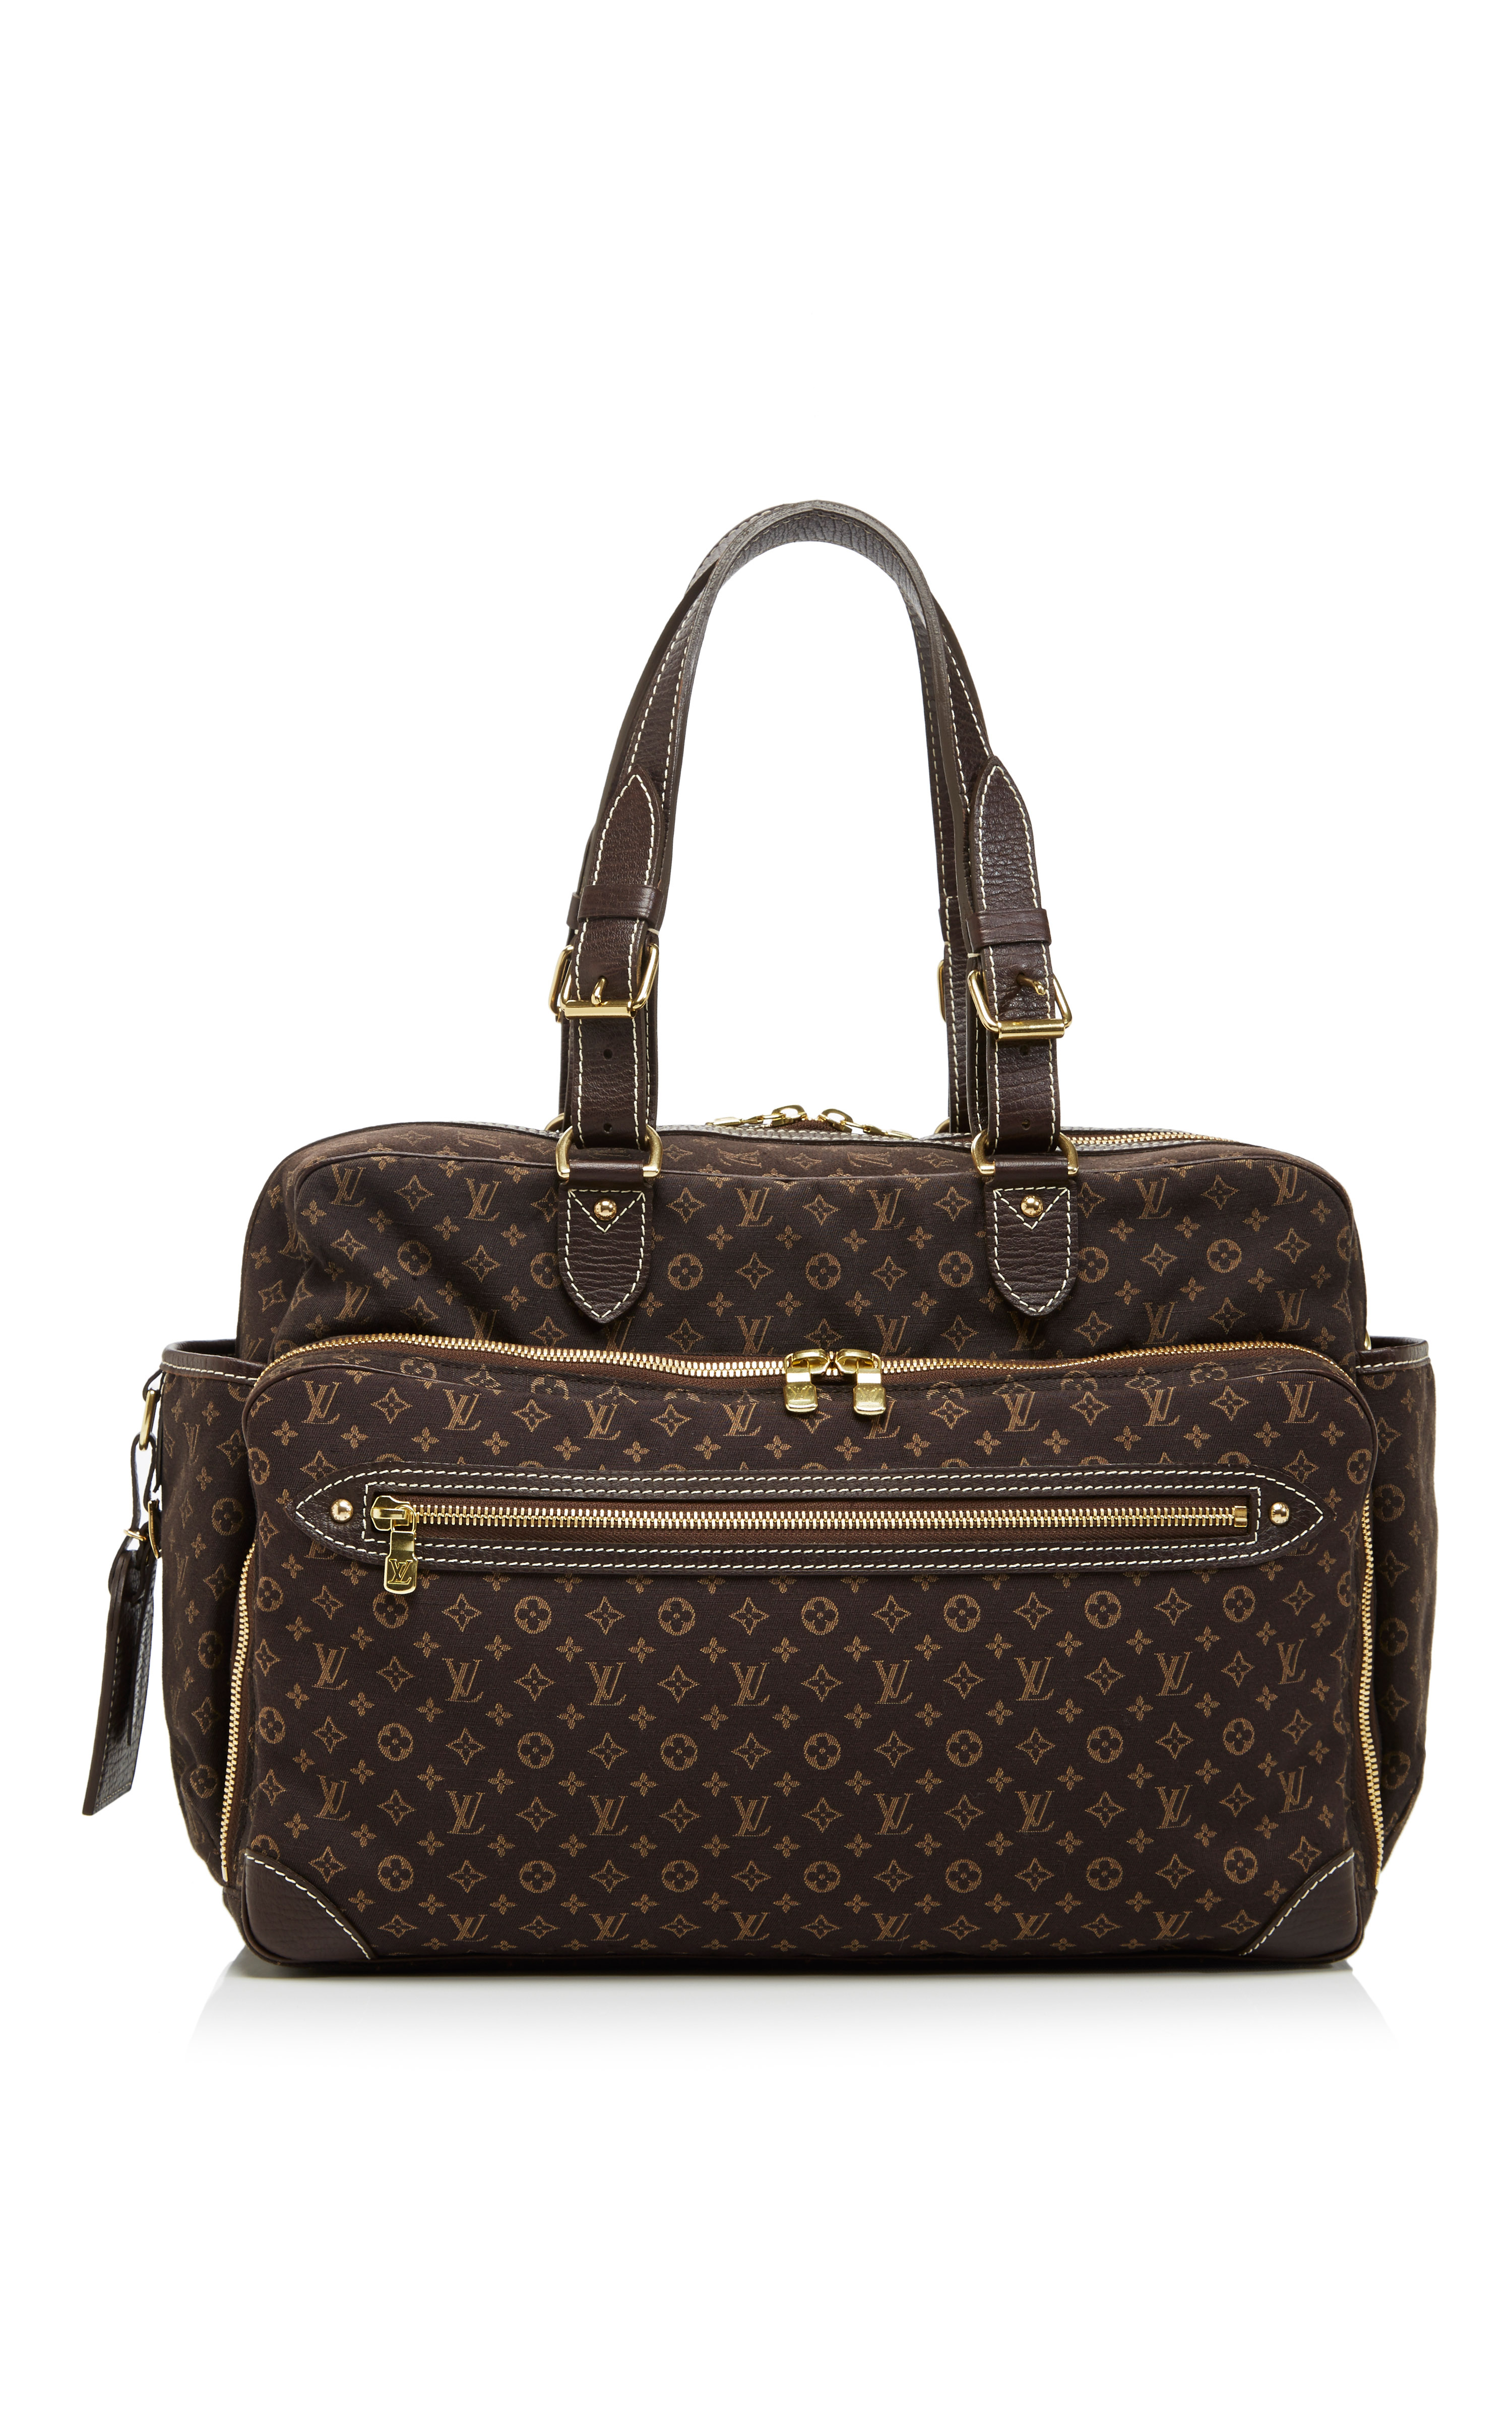 louis vuitton monogram mini lin sac a langer in brown multi lyst. Black Bedroom Furniture Sets. Home Design Ideas